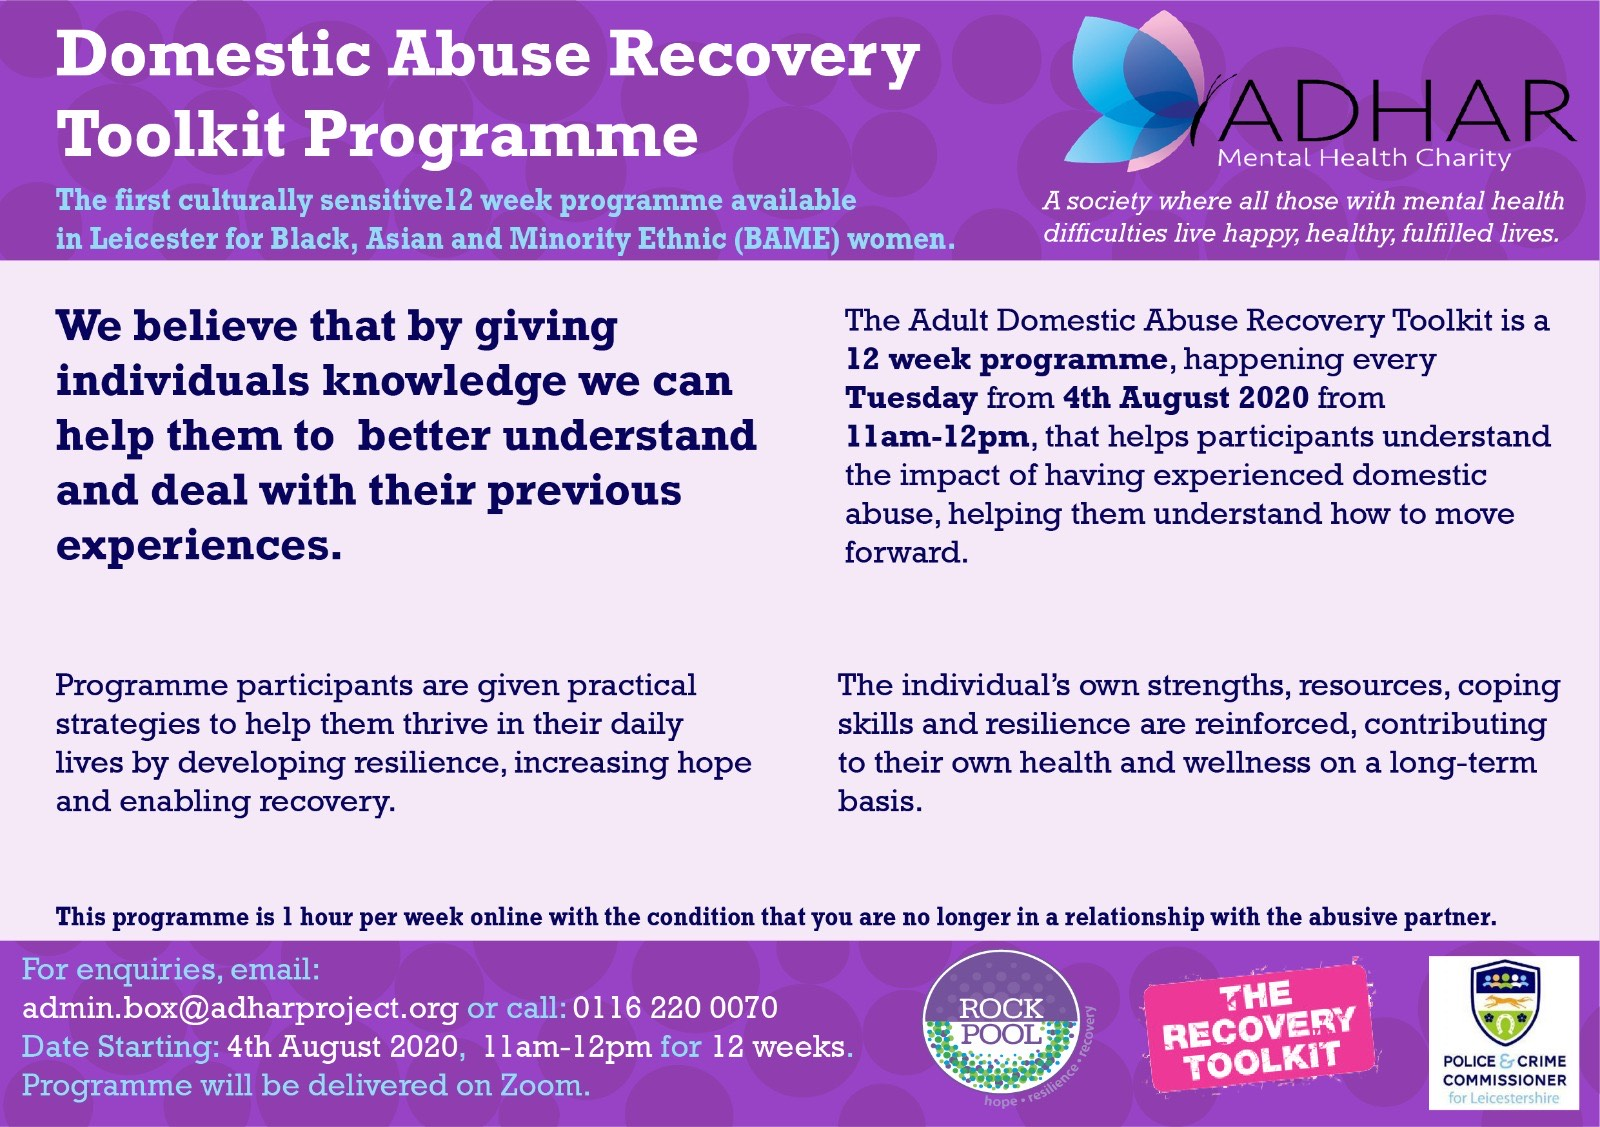 Domestic Abuse Recovery Toolkit Programme Online with Adhar Mental Health Charity